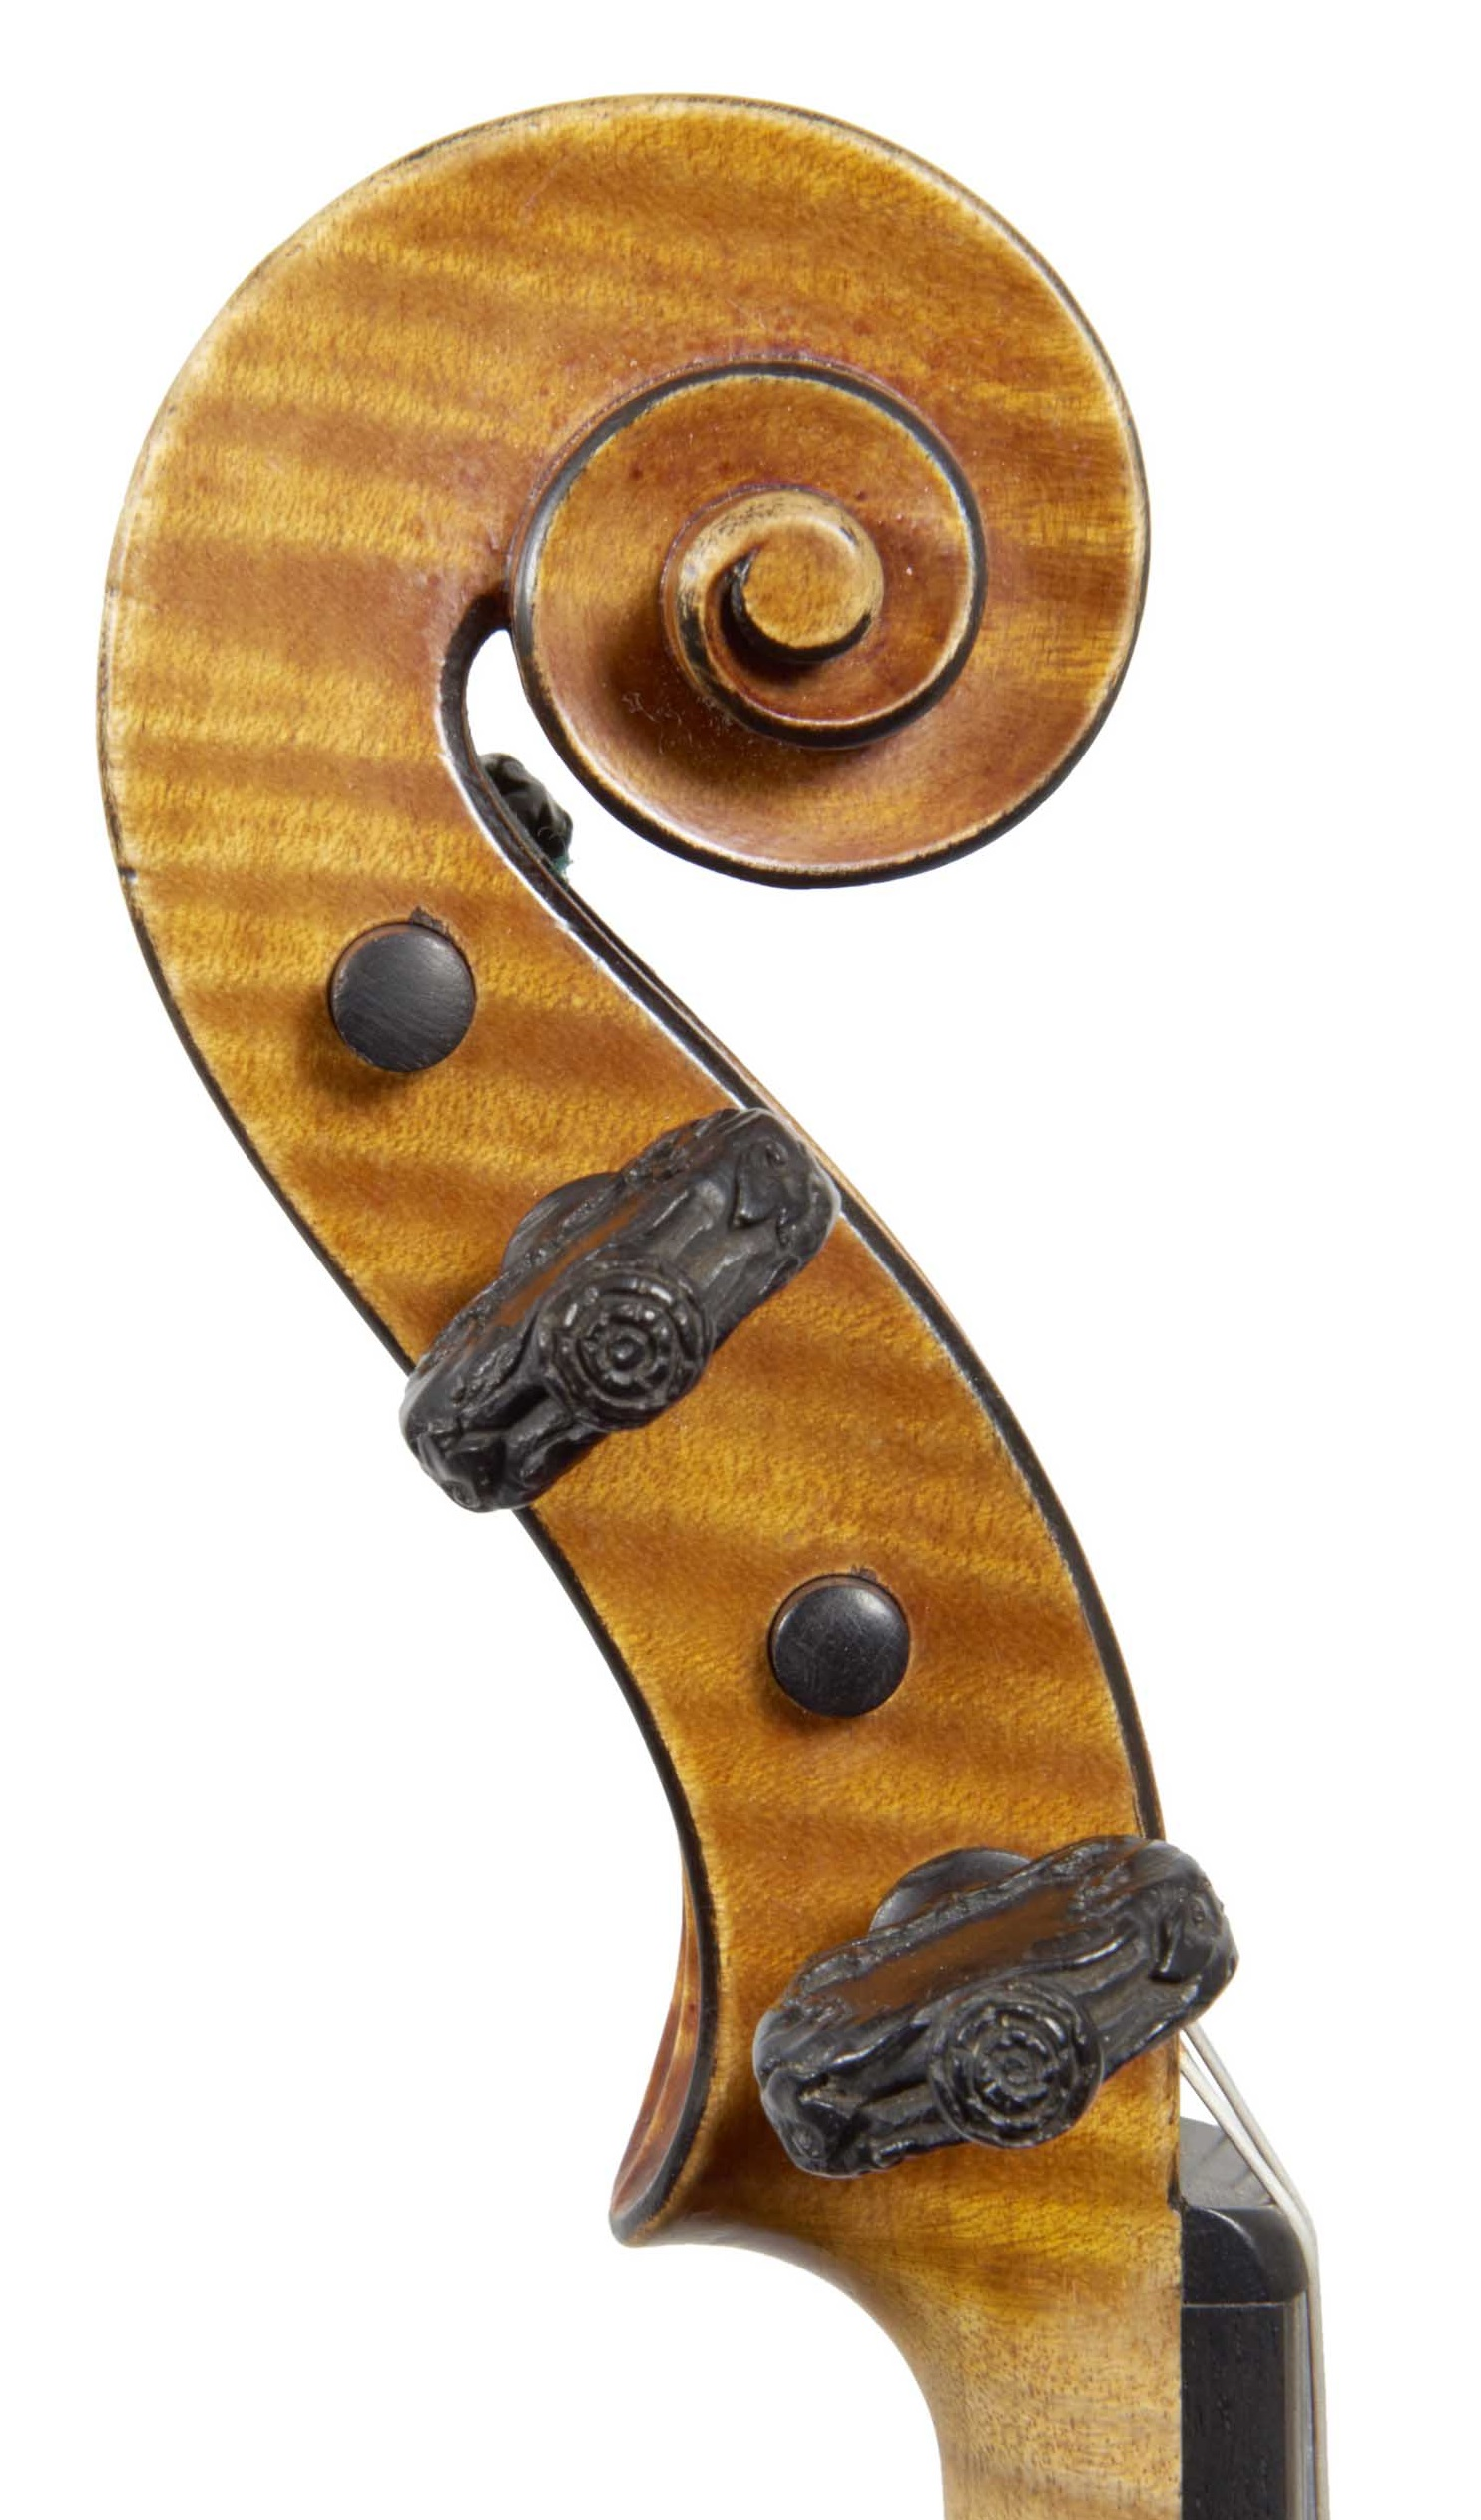 Scroll of St. Marc violin from the Evangelists quartet by JB Vuillaume, dated 18